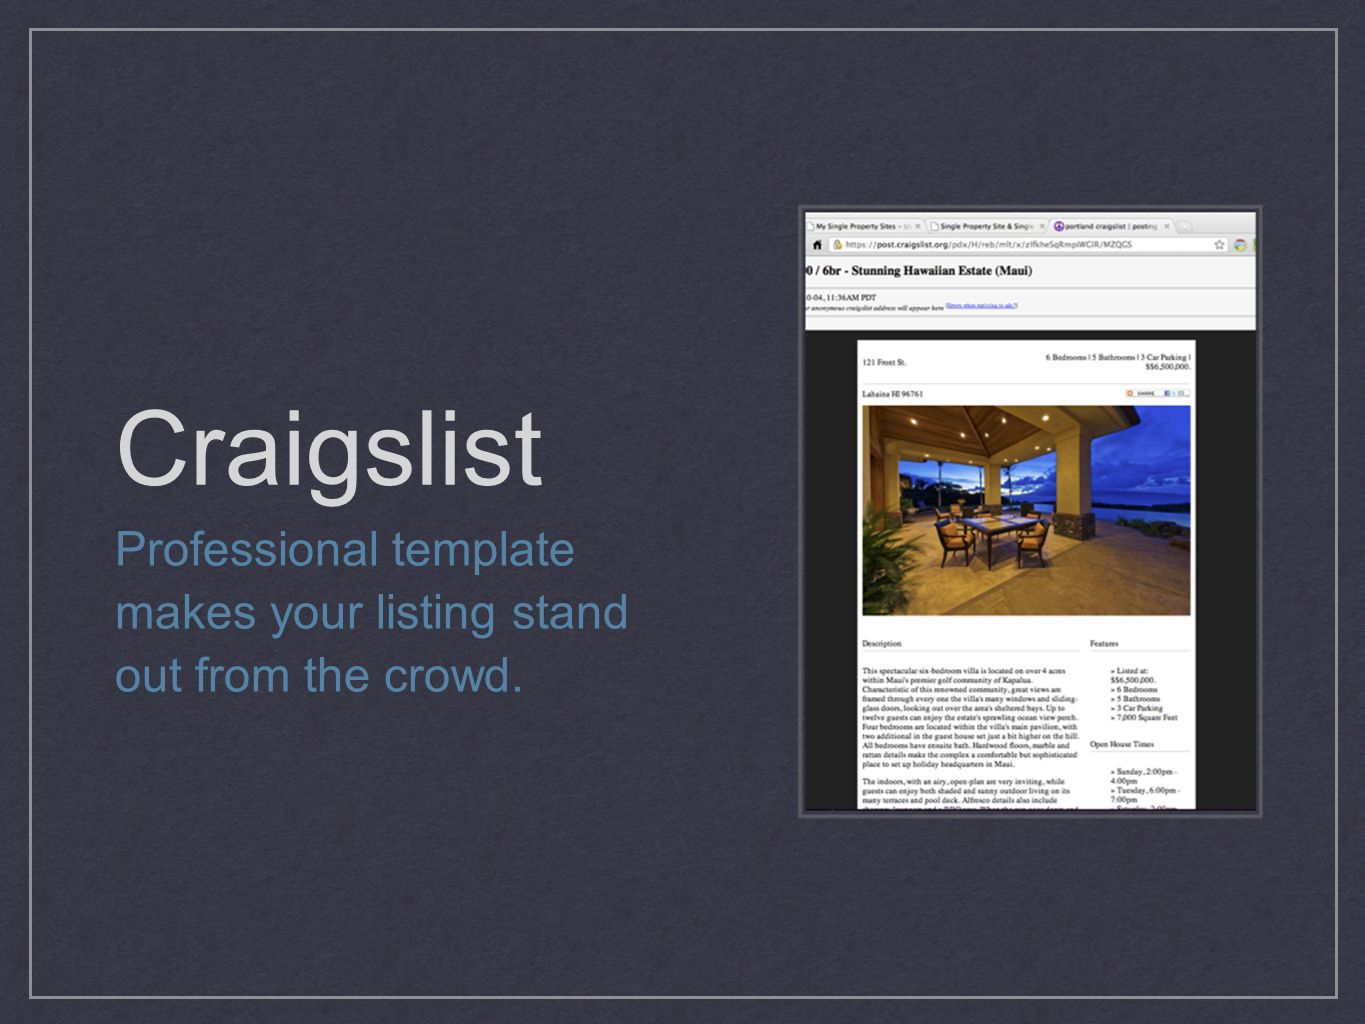 Craigslist Professional template makes your listing stand out from the crowd.